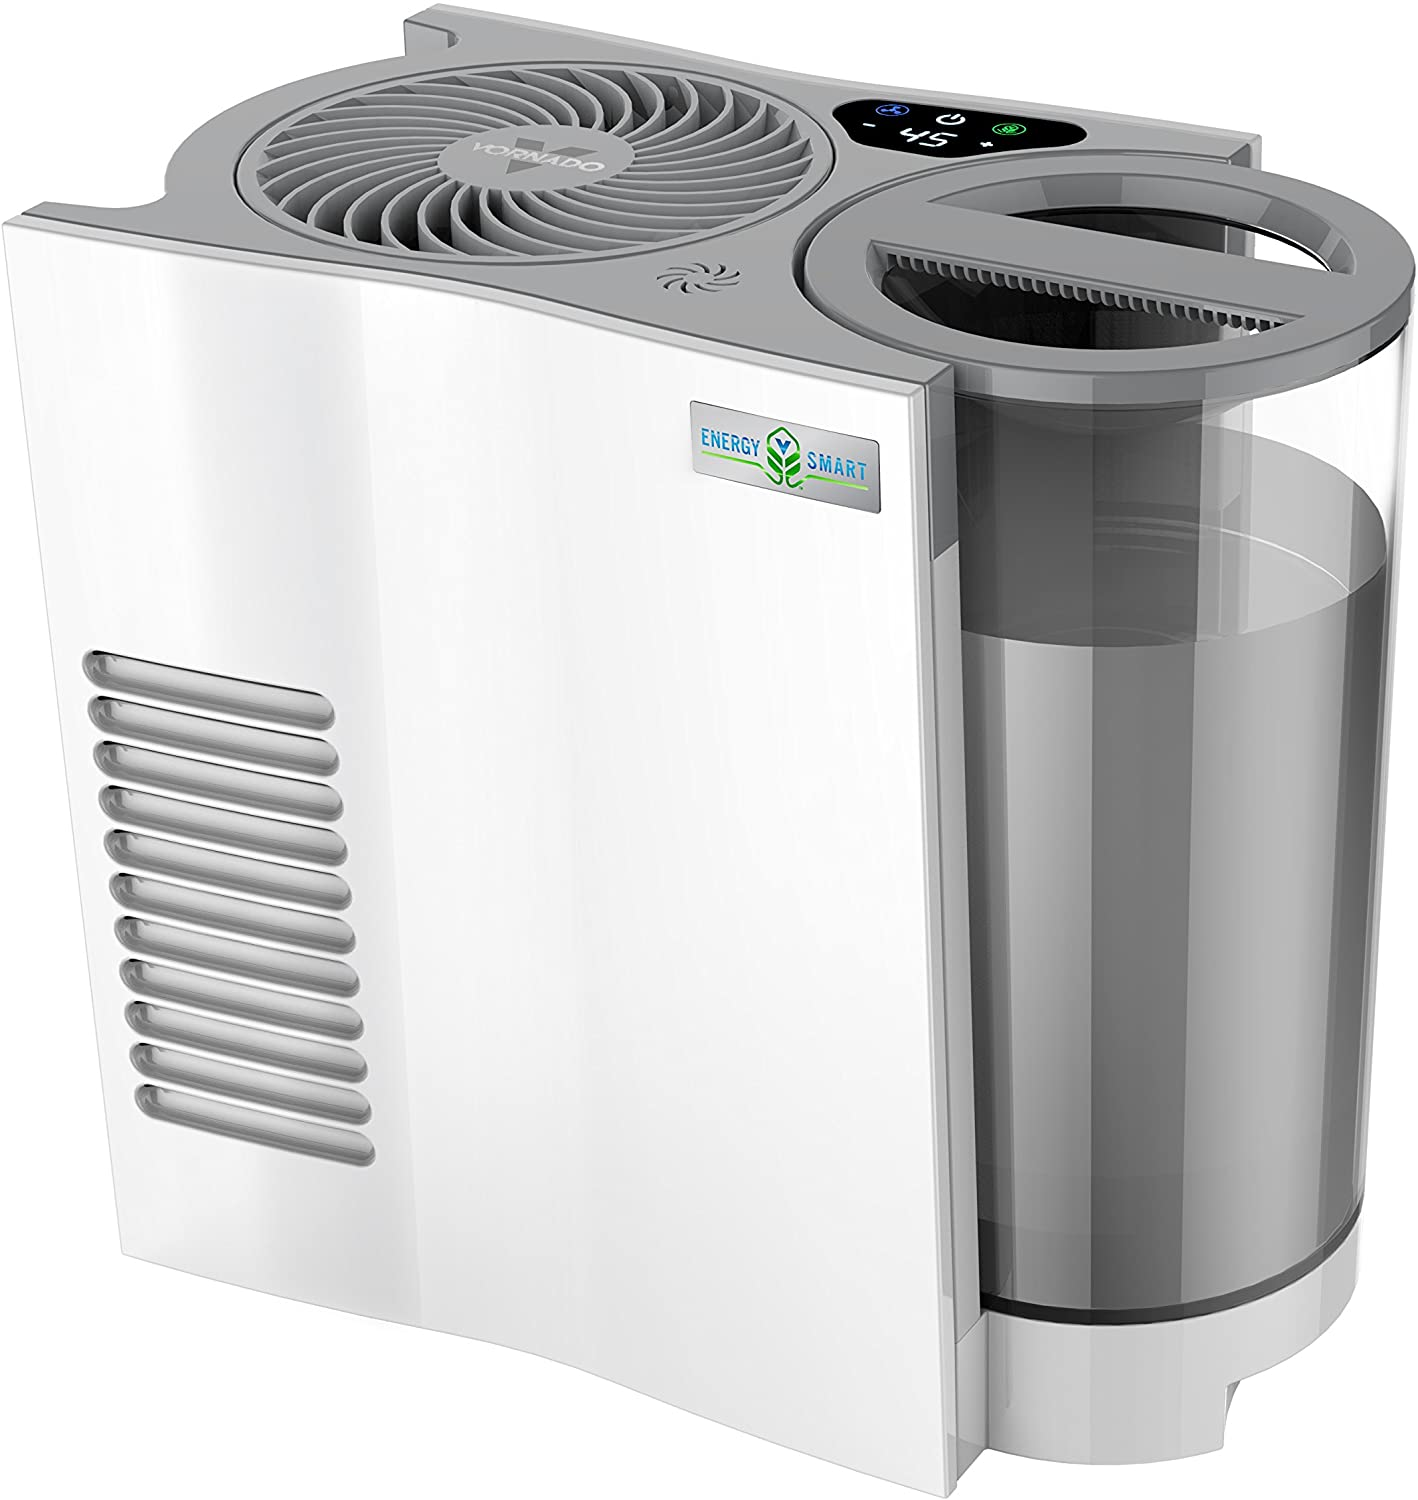 Vornado EVDC300 Energy Smart Evaporative Max 59% OFF Humidifier with Automat Selling